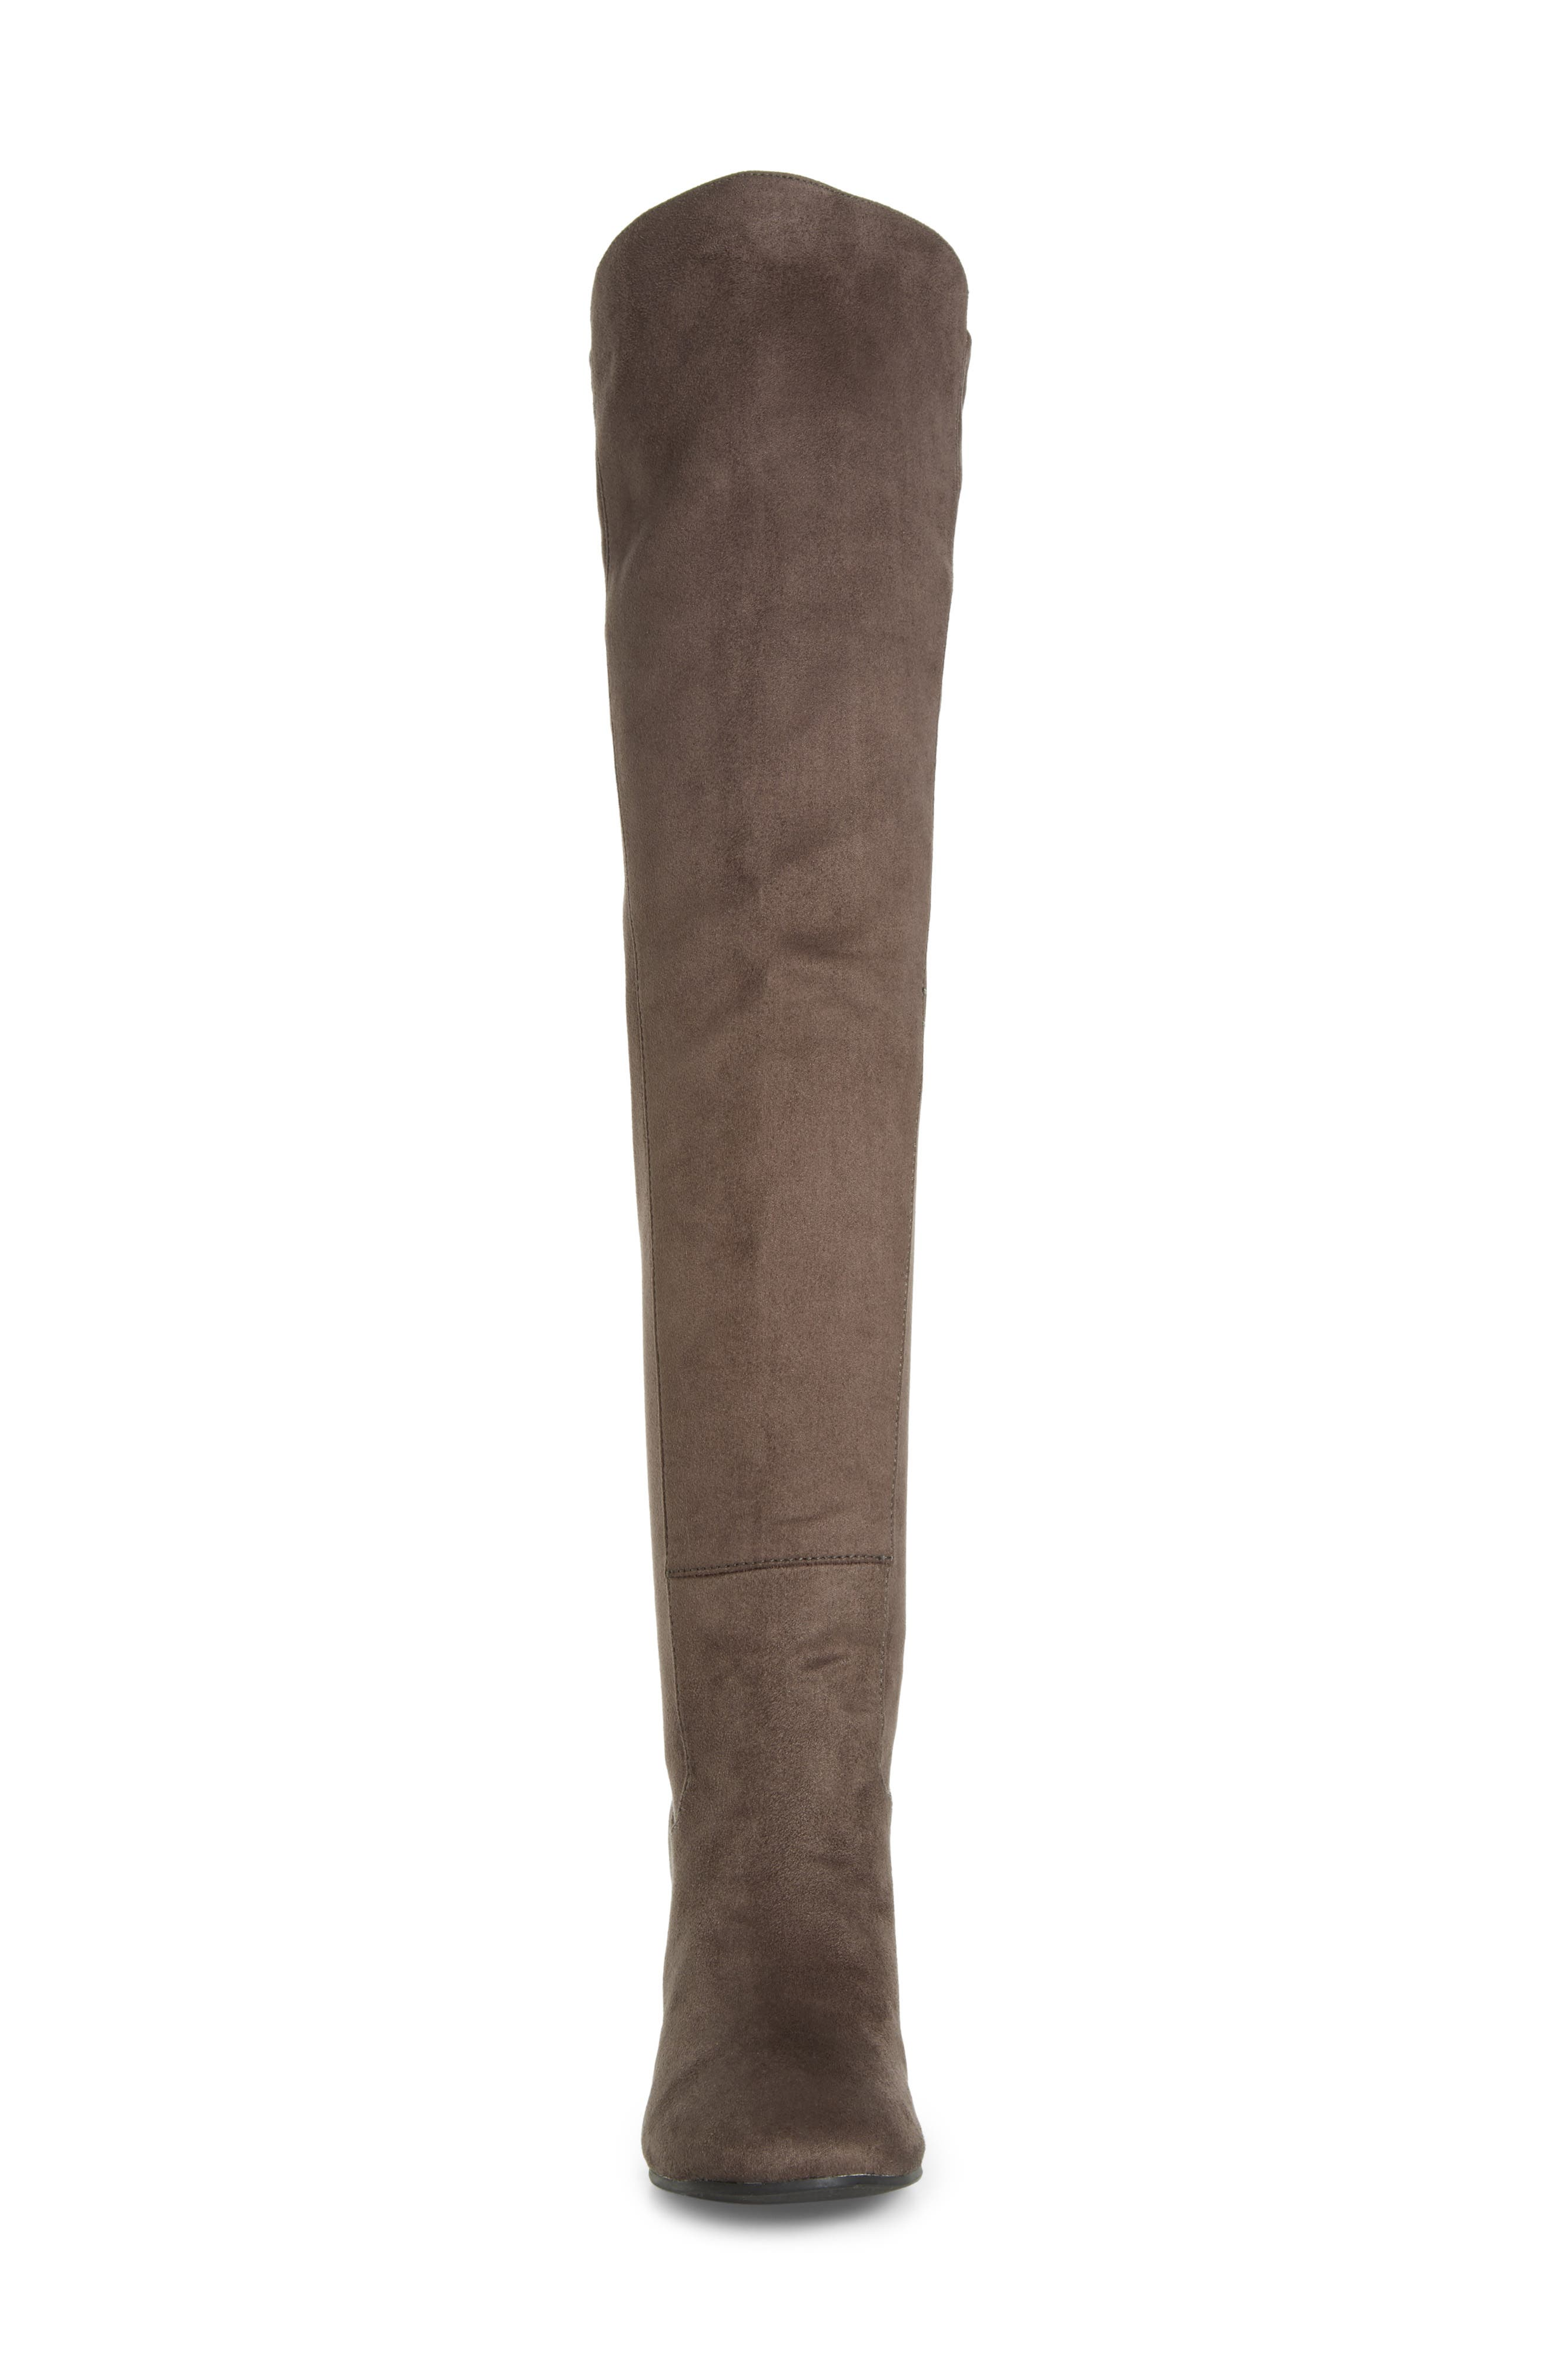 Lynx Stretch Over the Knee Boot,                             Alternate thumbnail 3, color,                             Charcoal Faux Suede